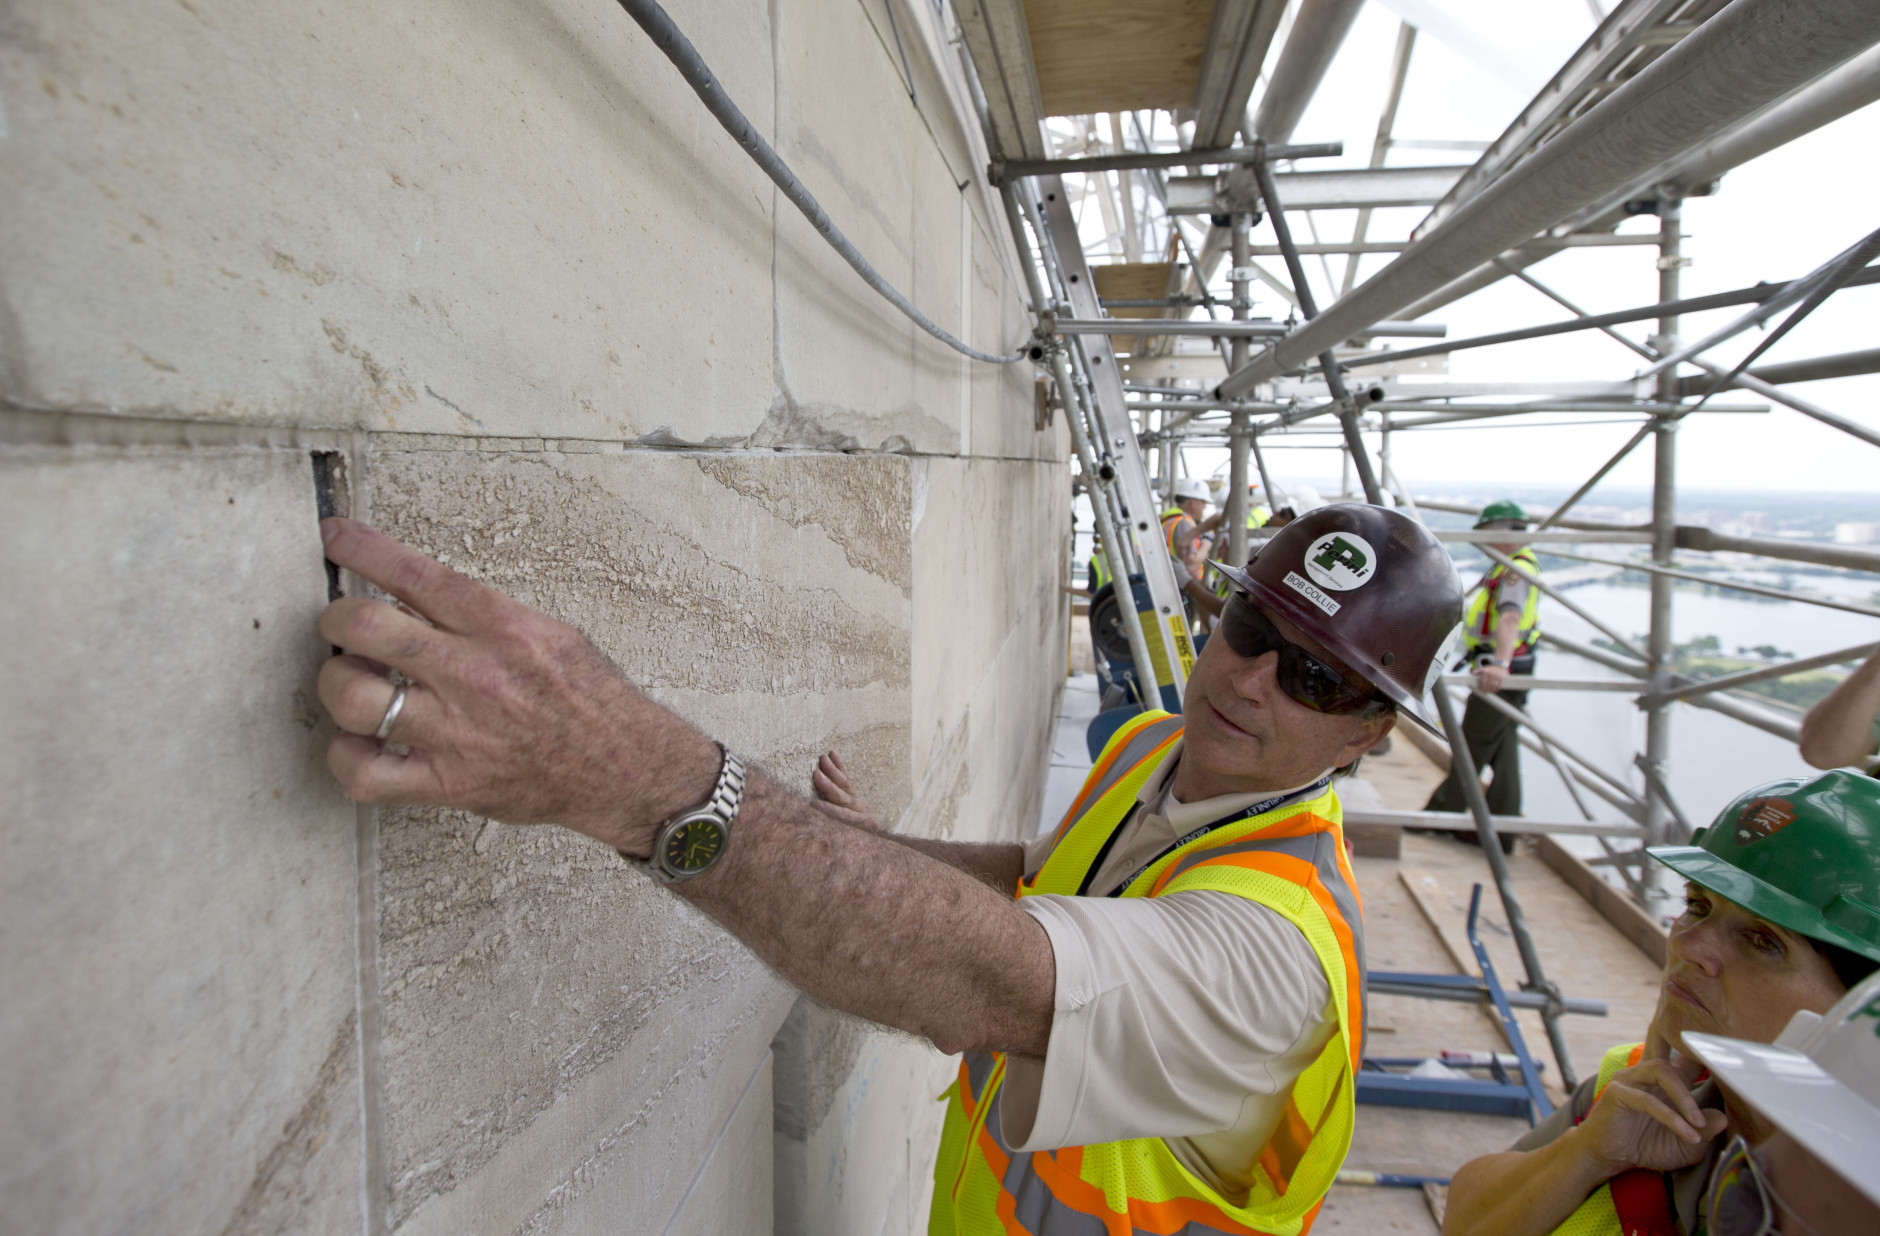 FILE - In this June 2, 2013 file photo, Bob Collie, project manager with Perini Management Services, puts his finger in a crack of the Washington Monument at the 491-foot level of the scaffolding surrounding the monument, in Washington. The monument, which sustained damage from an earthquake in August 2011, will re-open to the public on Monday, May 12, 2014. (AP Photo/Alex Brandon, File)